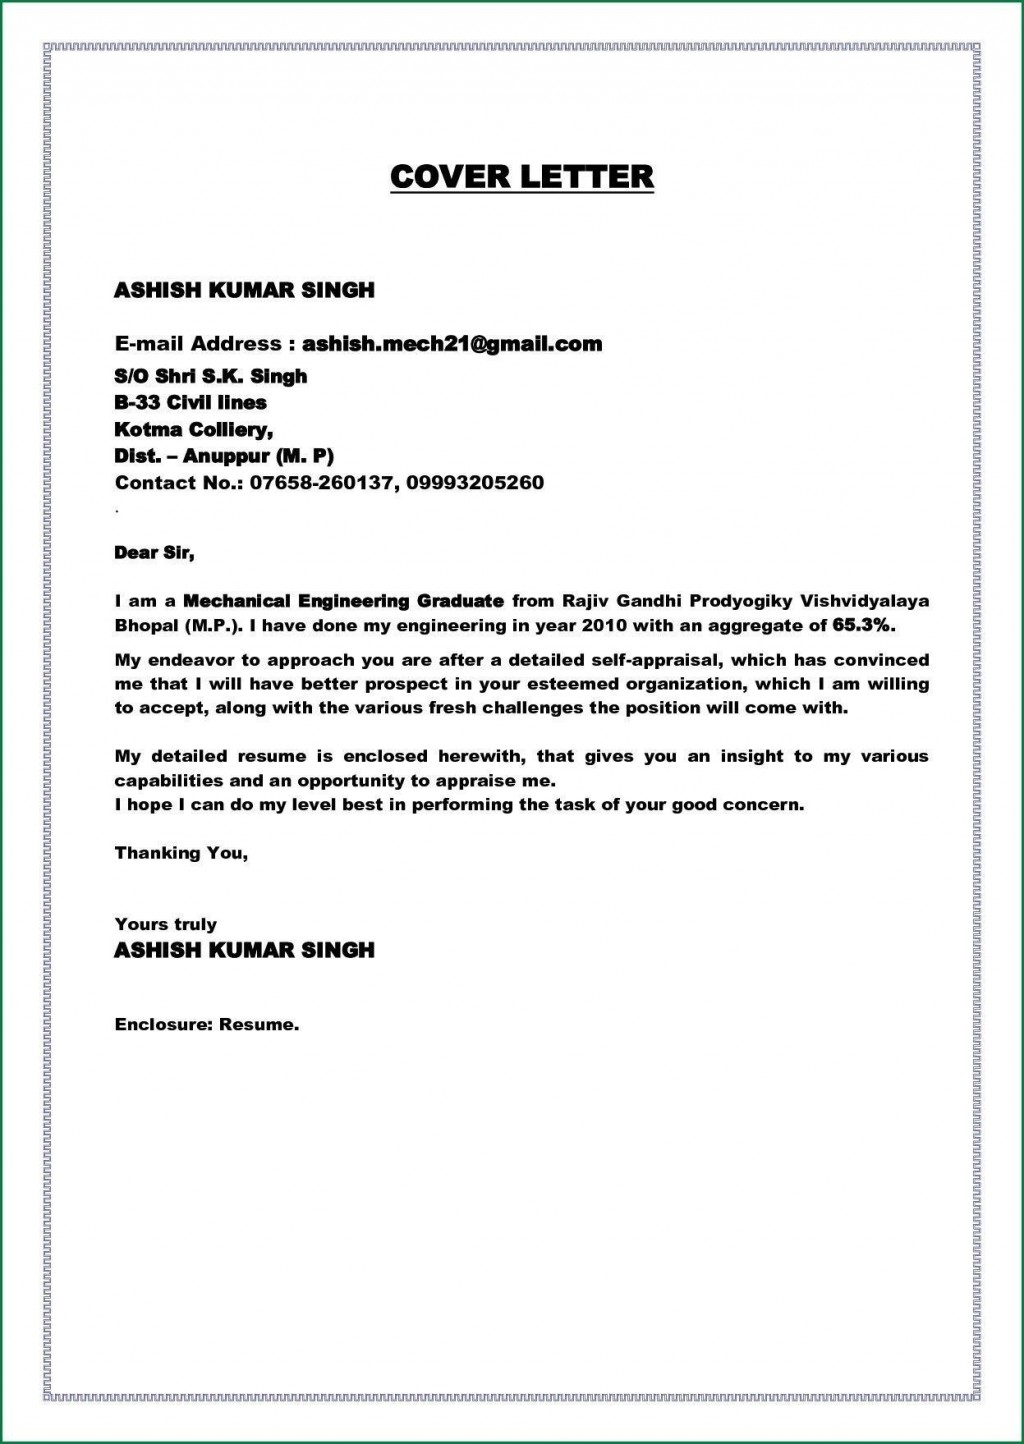 005 Fearsome Cover Letter Sample Template For Fresh Graduate In Marketing Concept Large